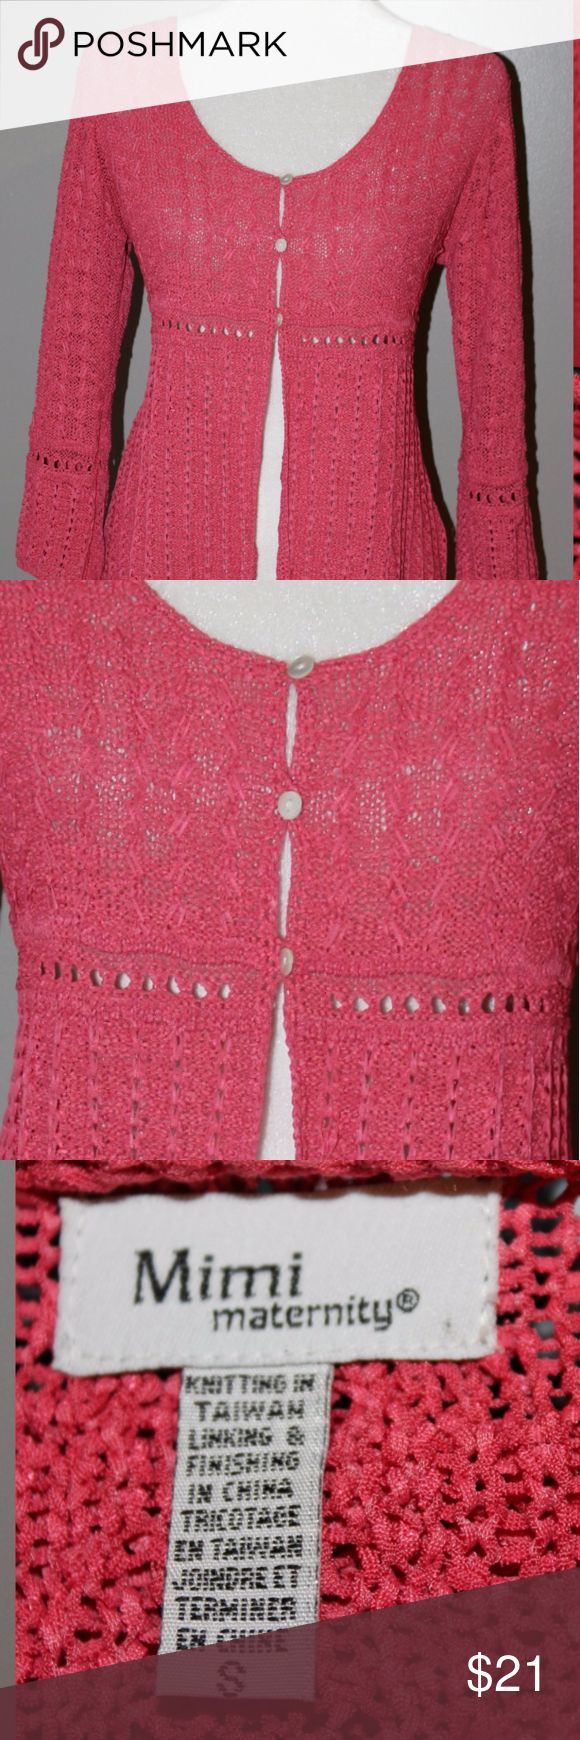 Mimi Maternity Cardigan Beautiful Crocheted Cardigan very boho and pretty can be worn as a regular non maternity cardigan as well Mimi Maternity Sweaters Cardigans